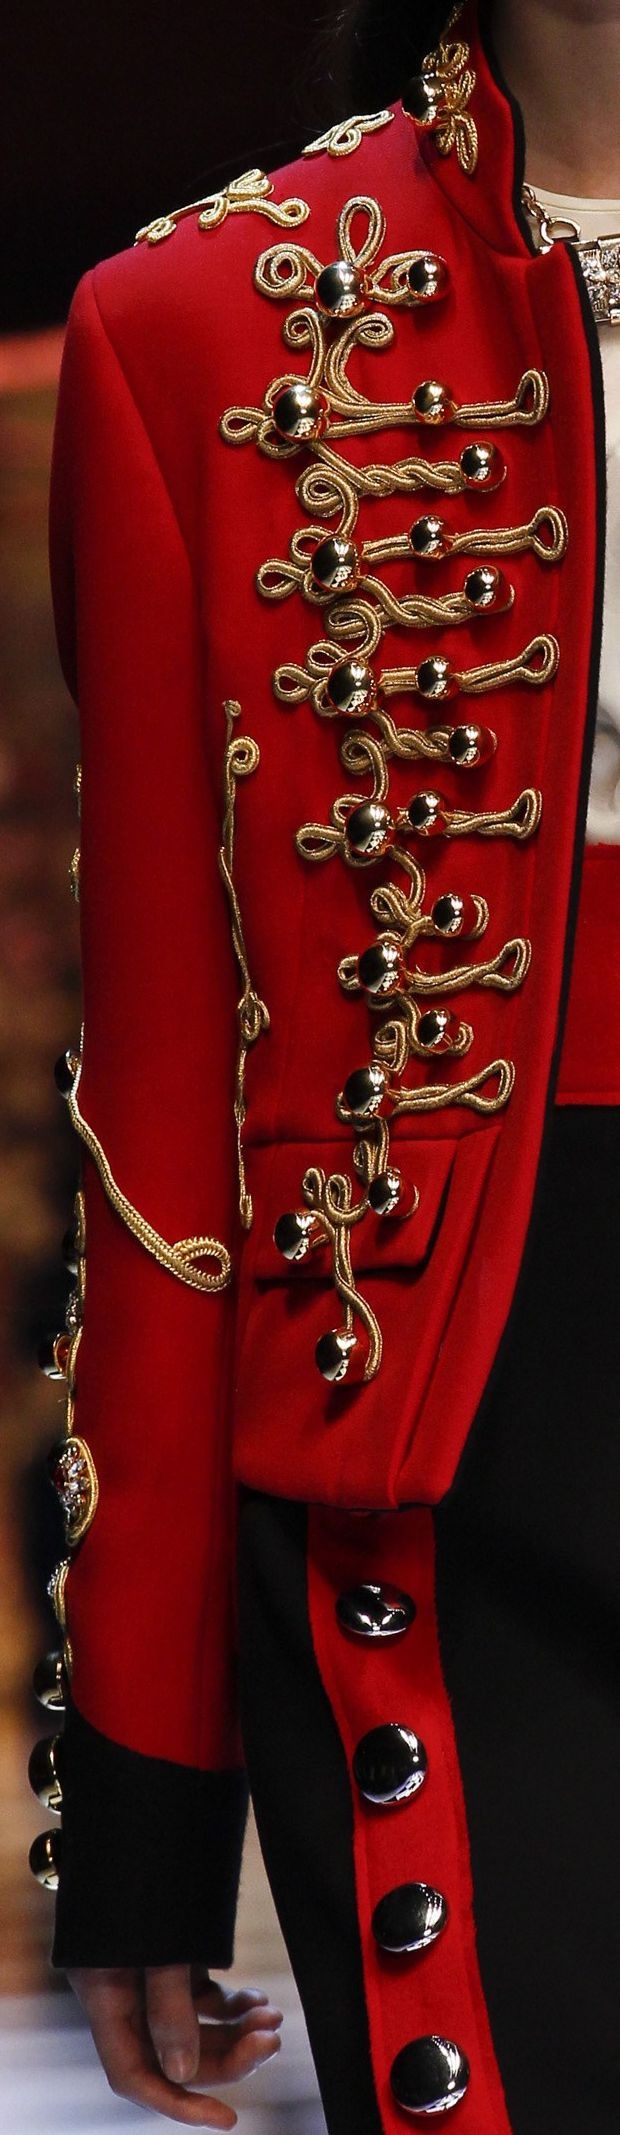 Fall 2016 Ready-to-Wear Dolce & Gabbana | Inna Erten